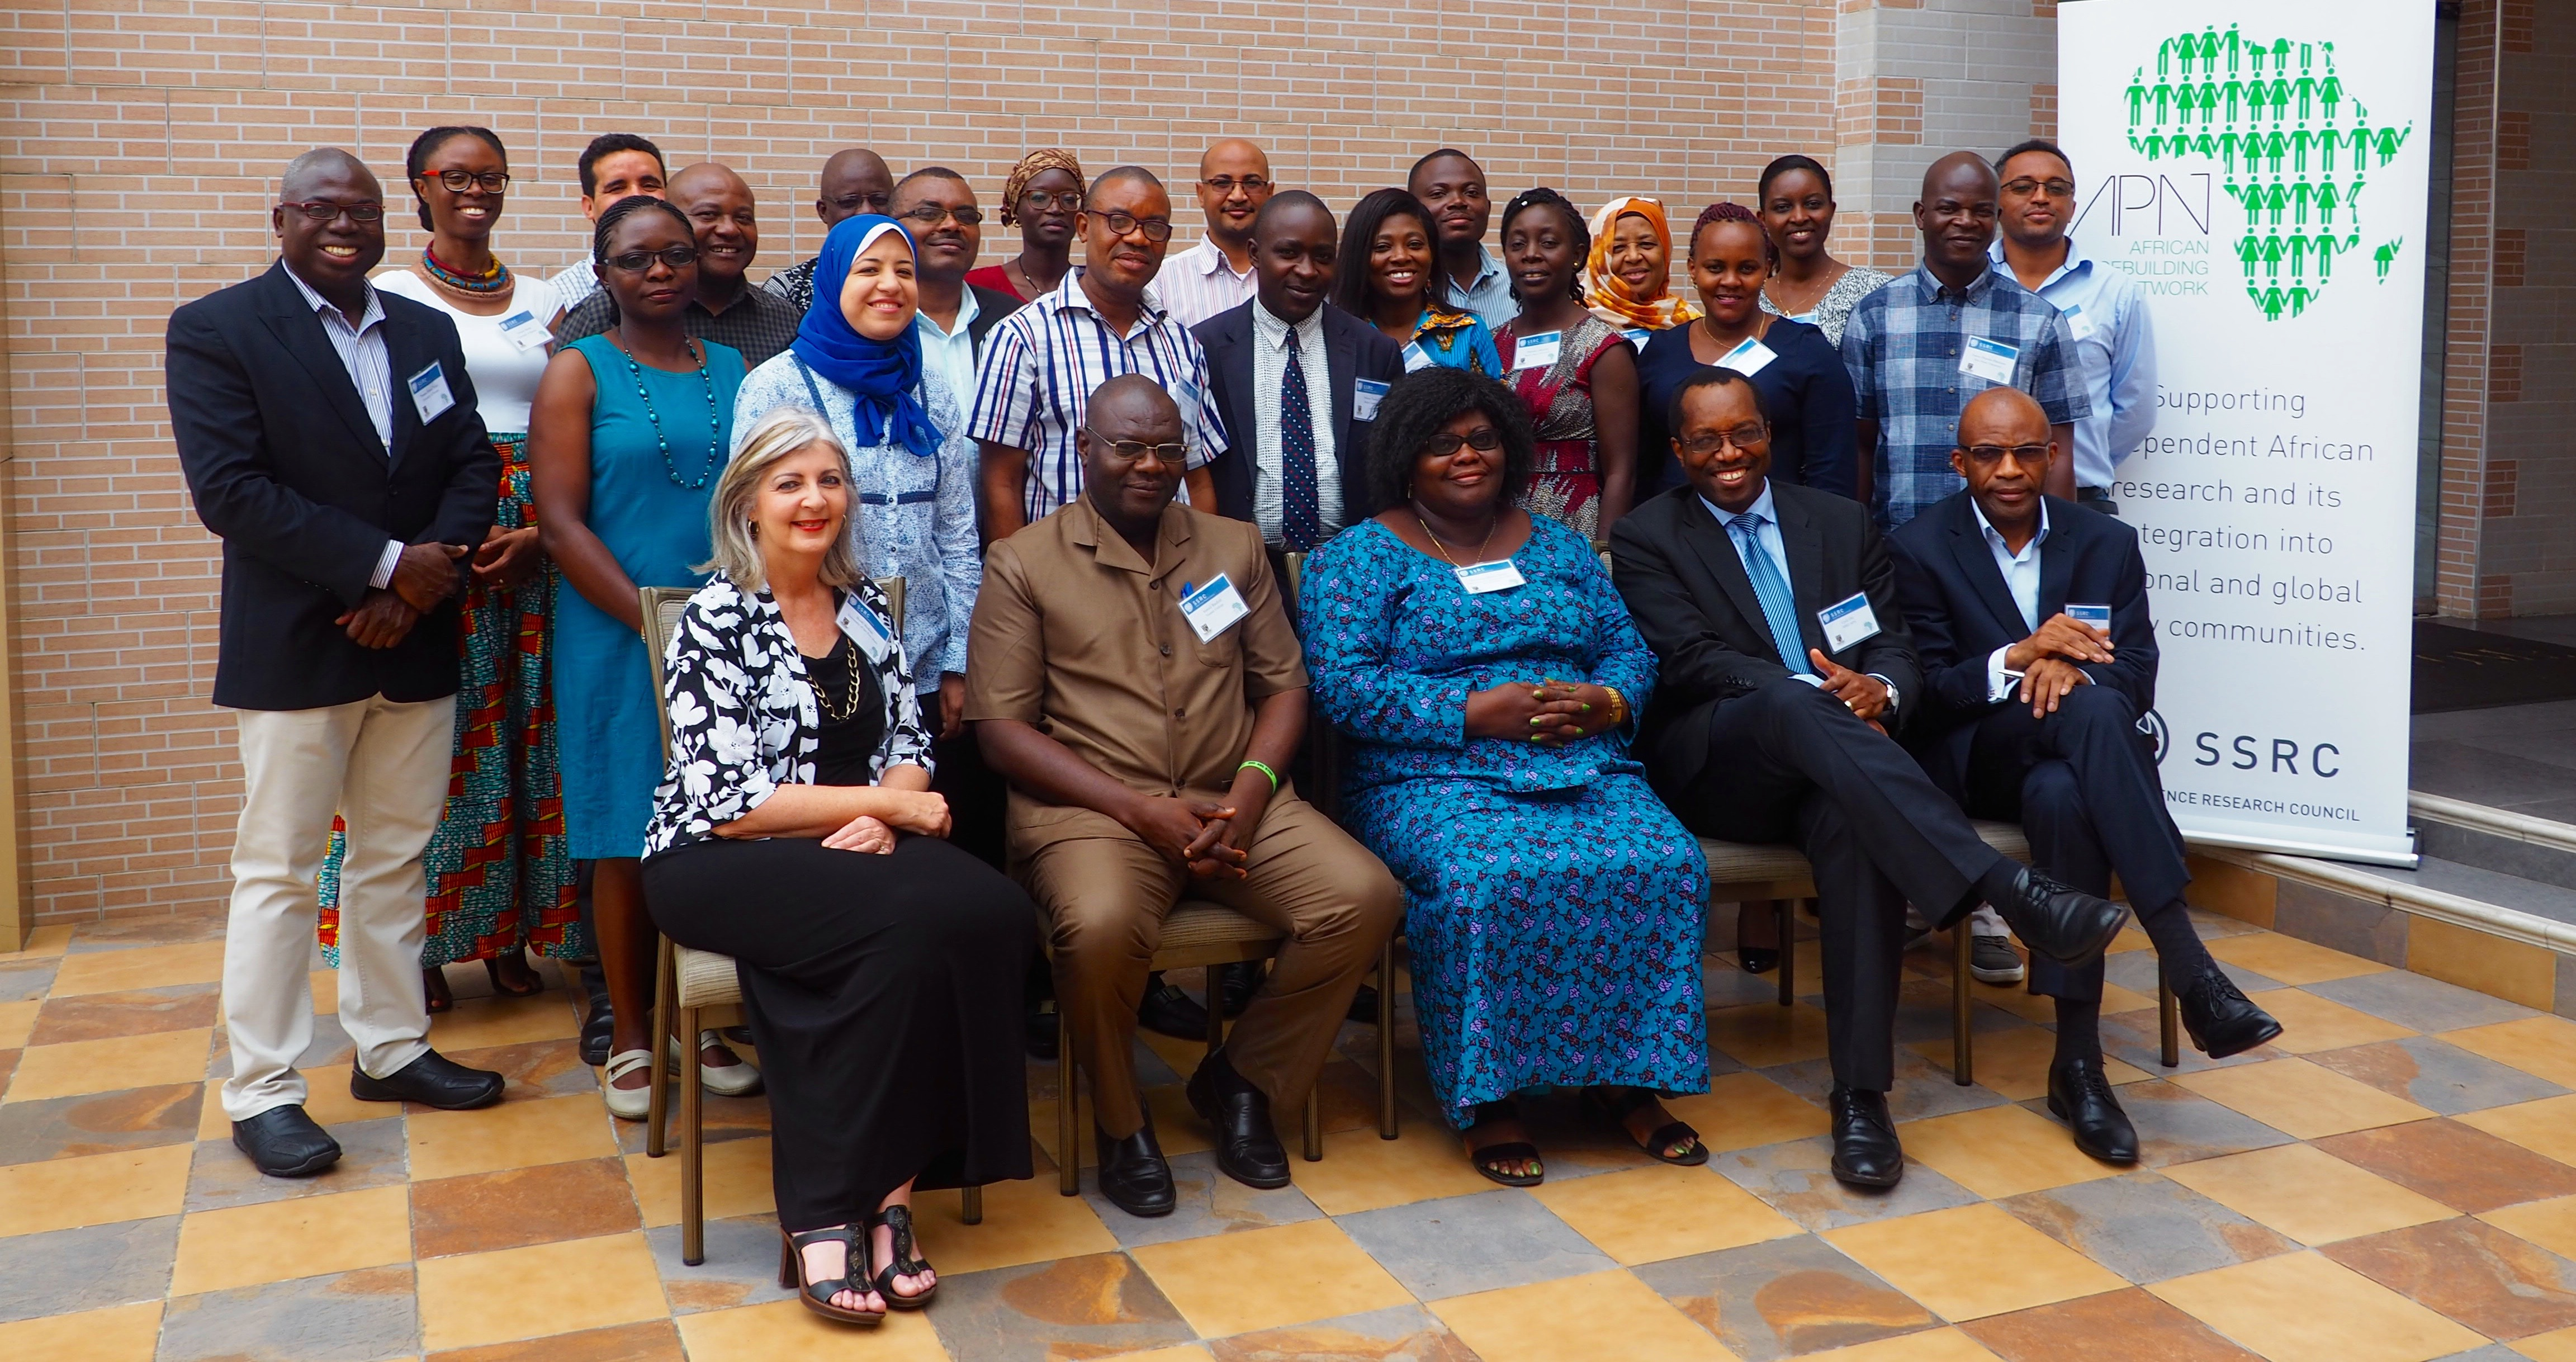 Group photo of the 2017 APN IRG Recipients in Accra, Ghana.